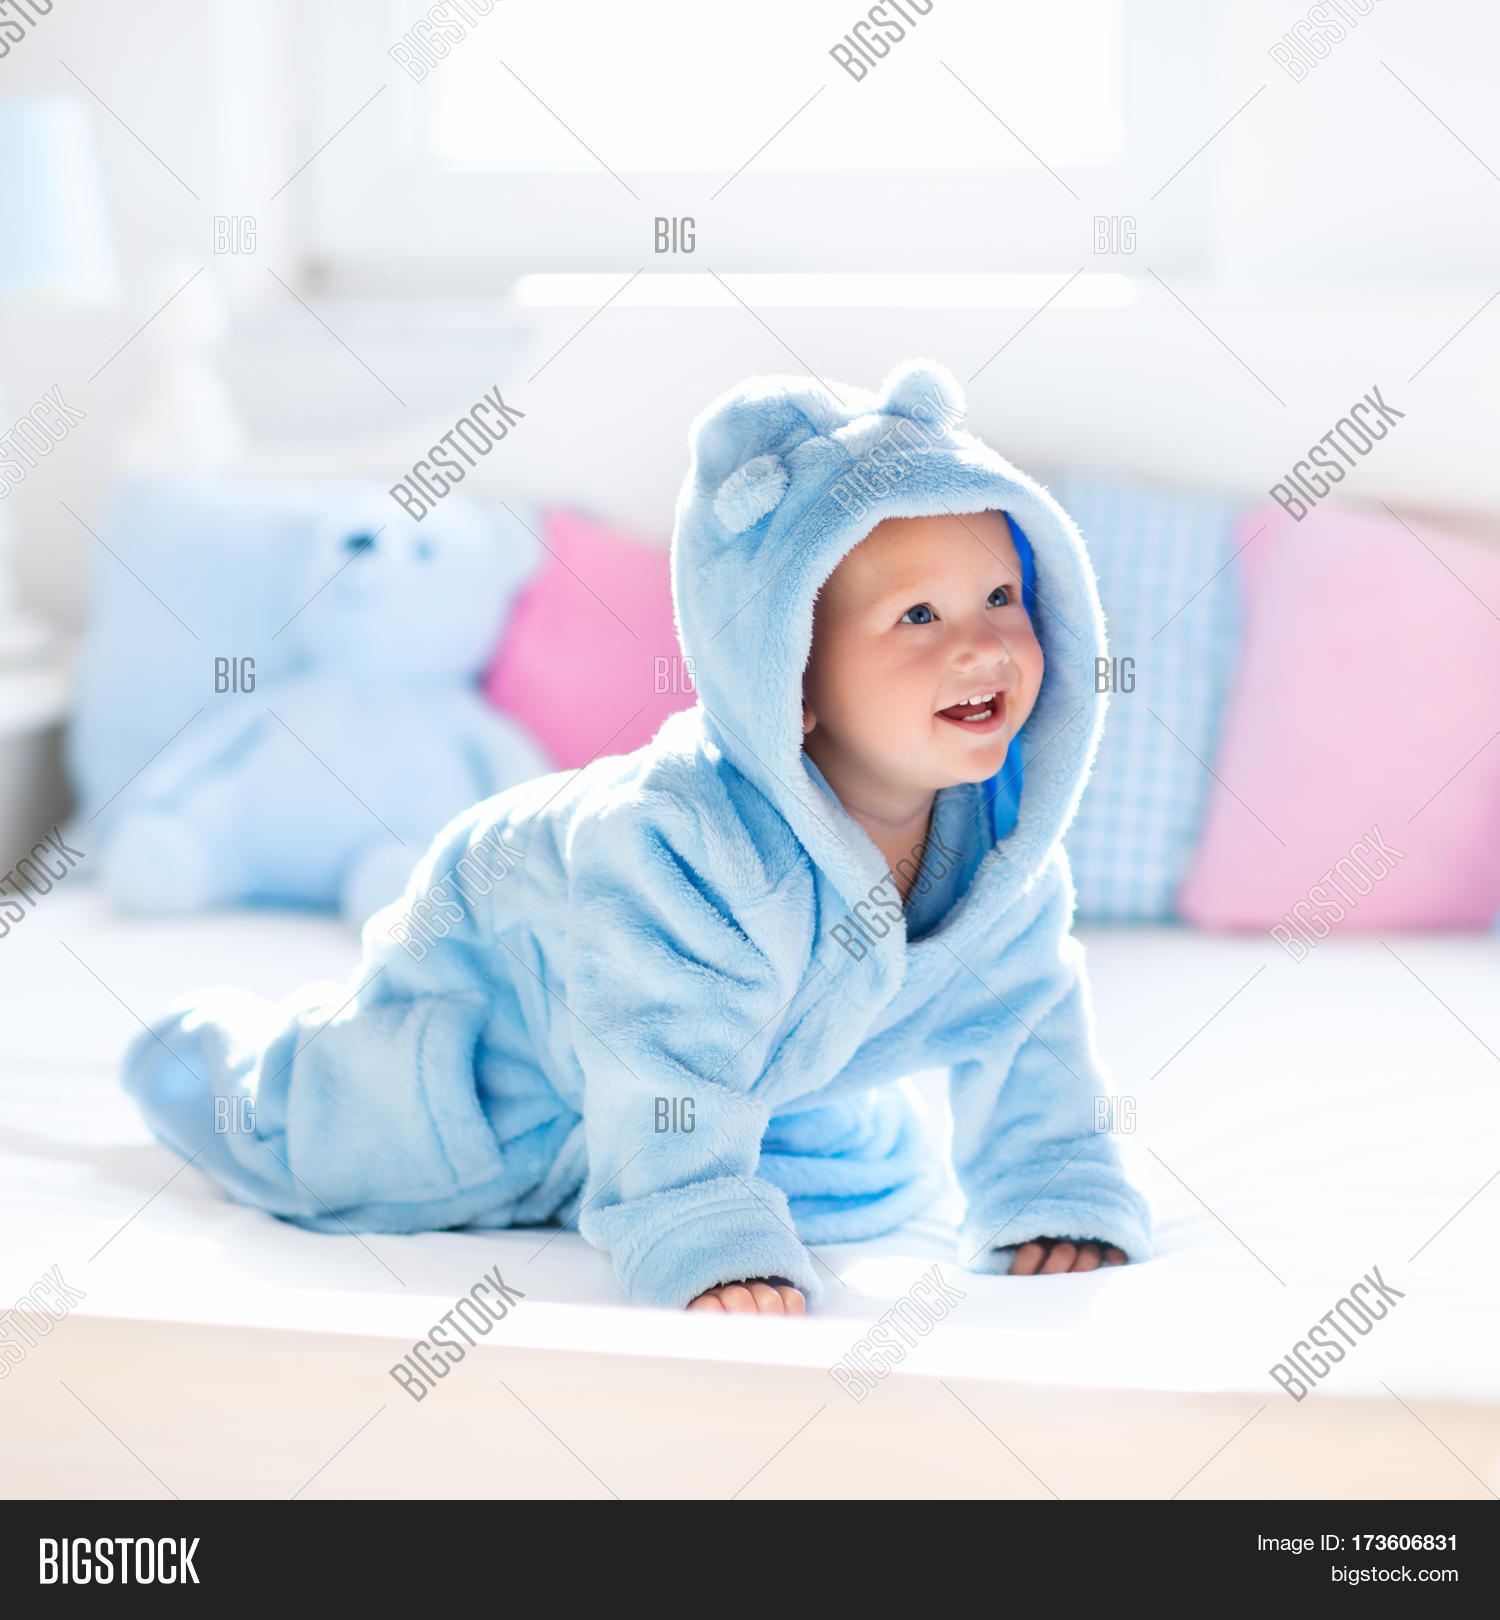 Unisex Bath Shower Bathrobe With Towel Photography Props For 0 6 Months Newborn Baby Swimming Pool